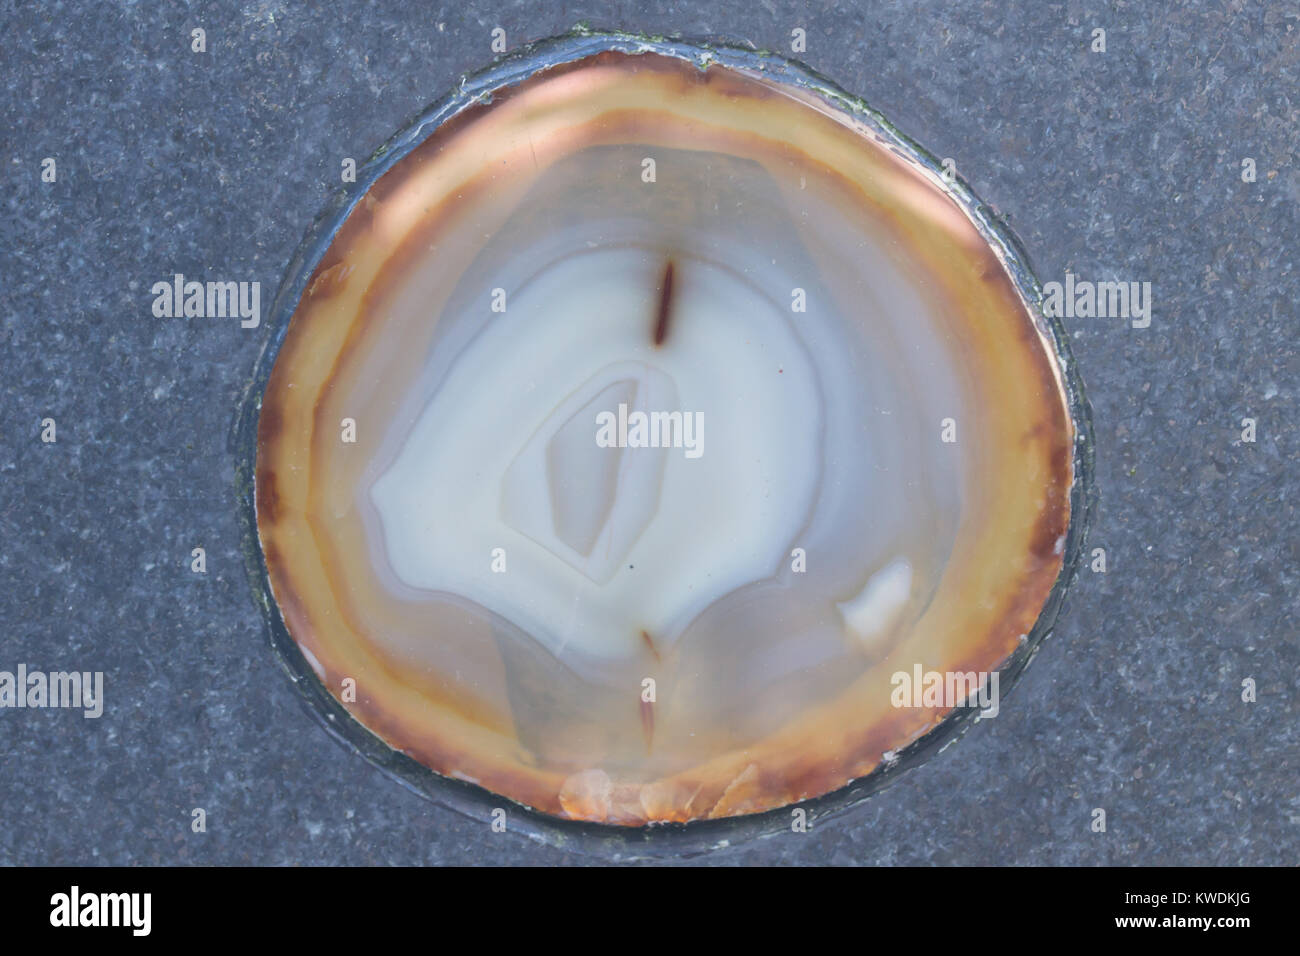 refined round agate mineral inbeded in to  stone - Stock Image